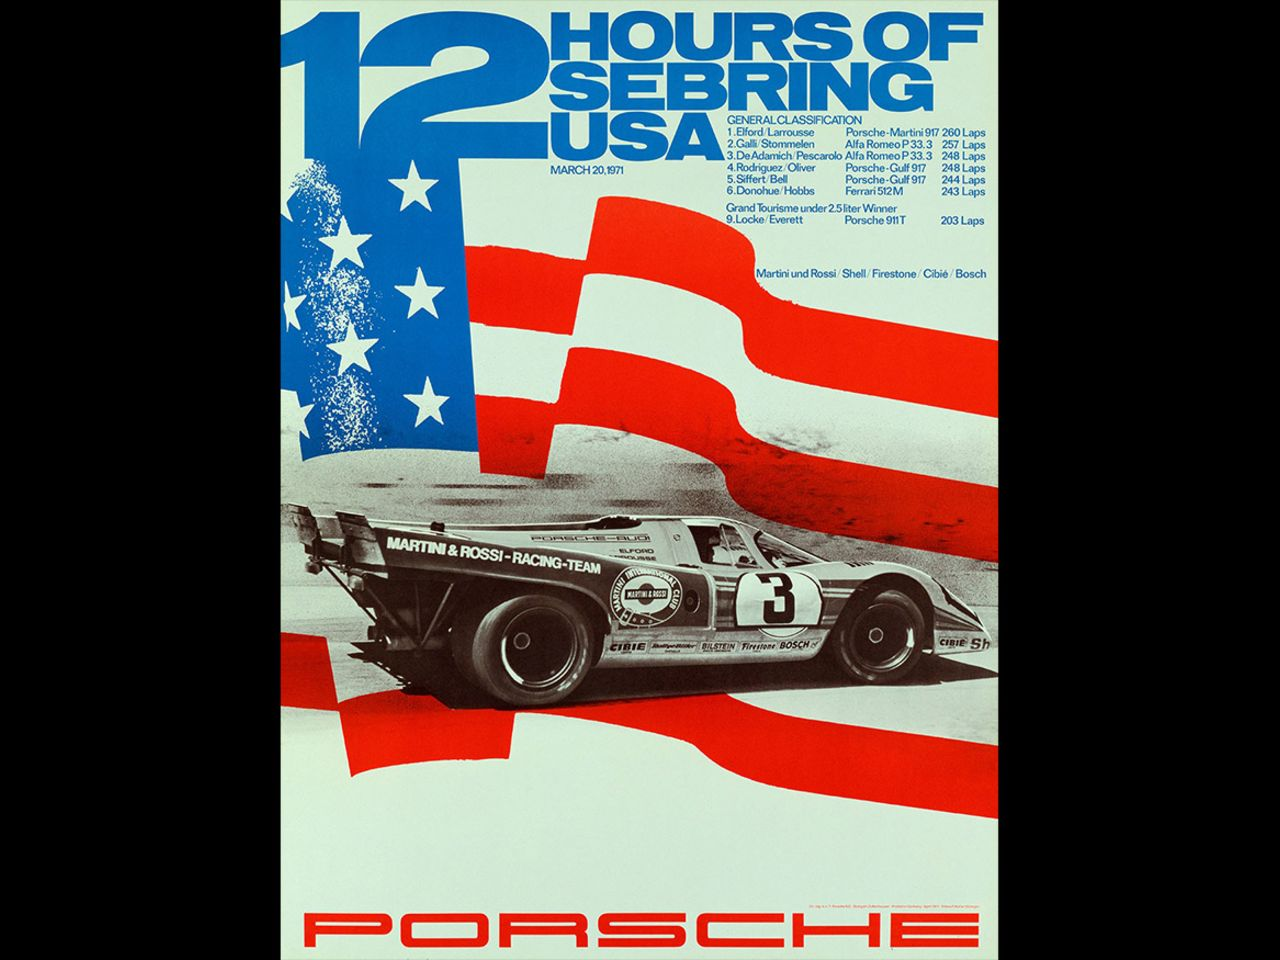 Porsche victories at various long-distance races prompted a succession of new graphic designs, such as this one from the 12 Hours of Sebring in 1971 ...